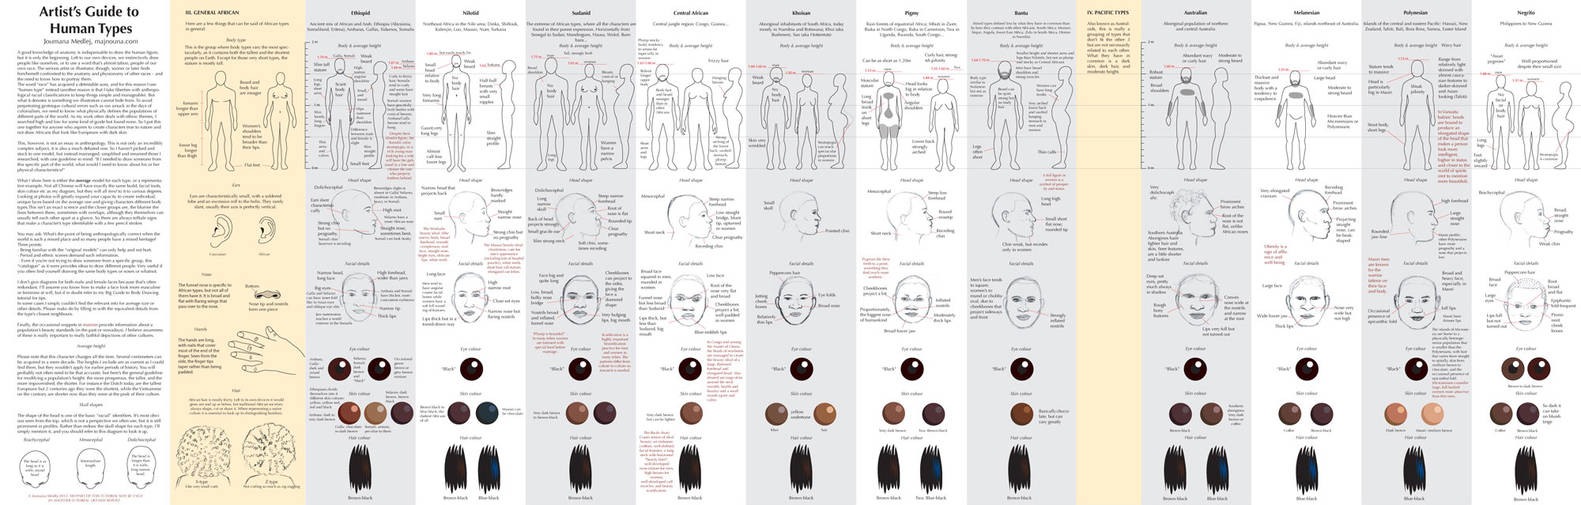 Guide to Human Types part 3